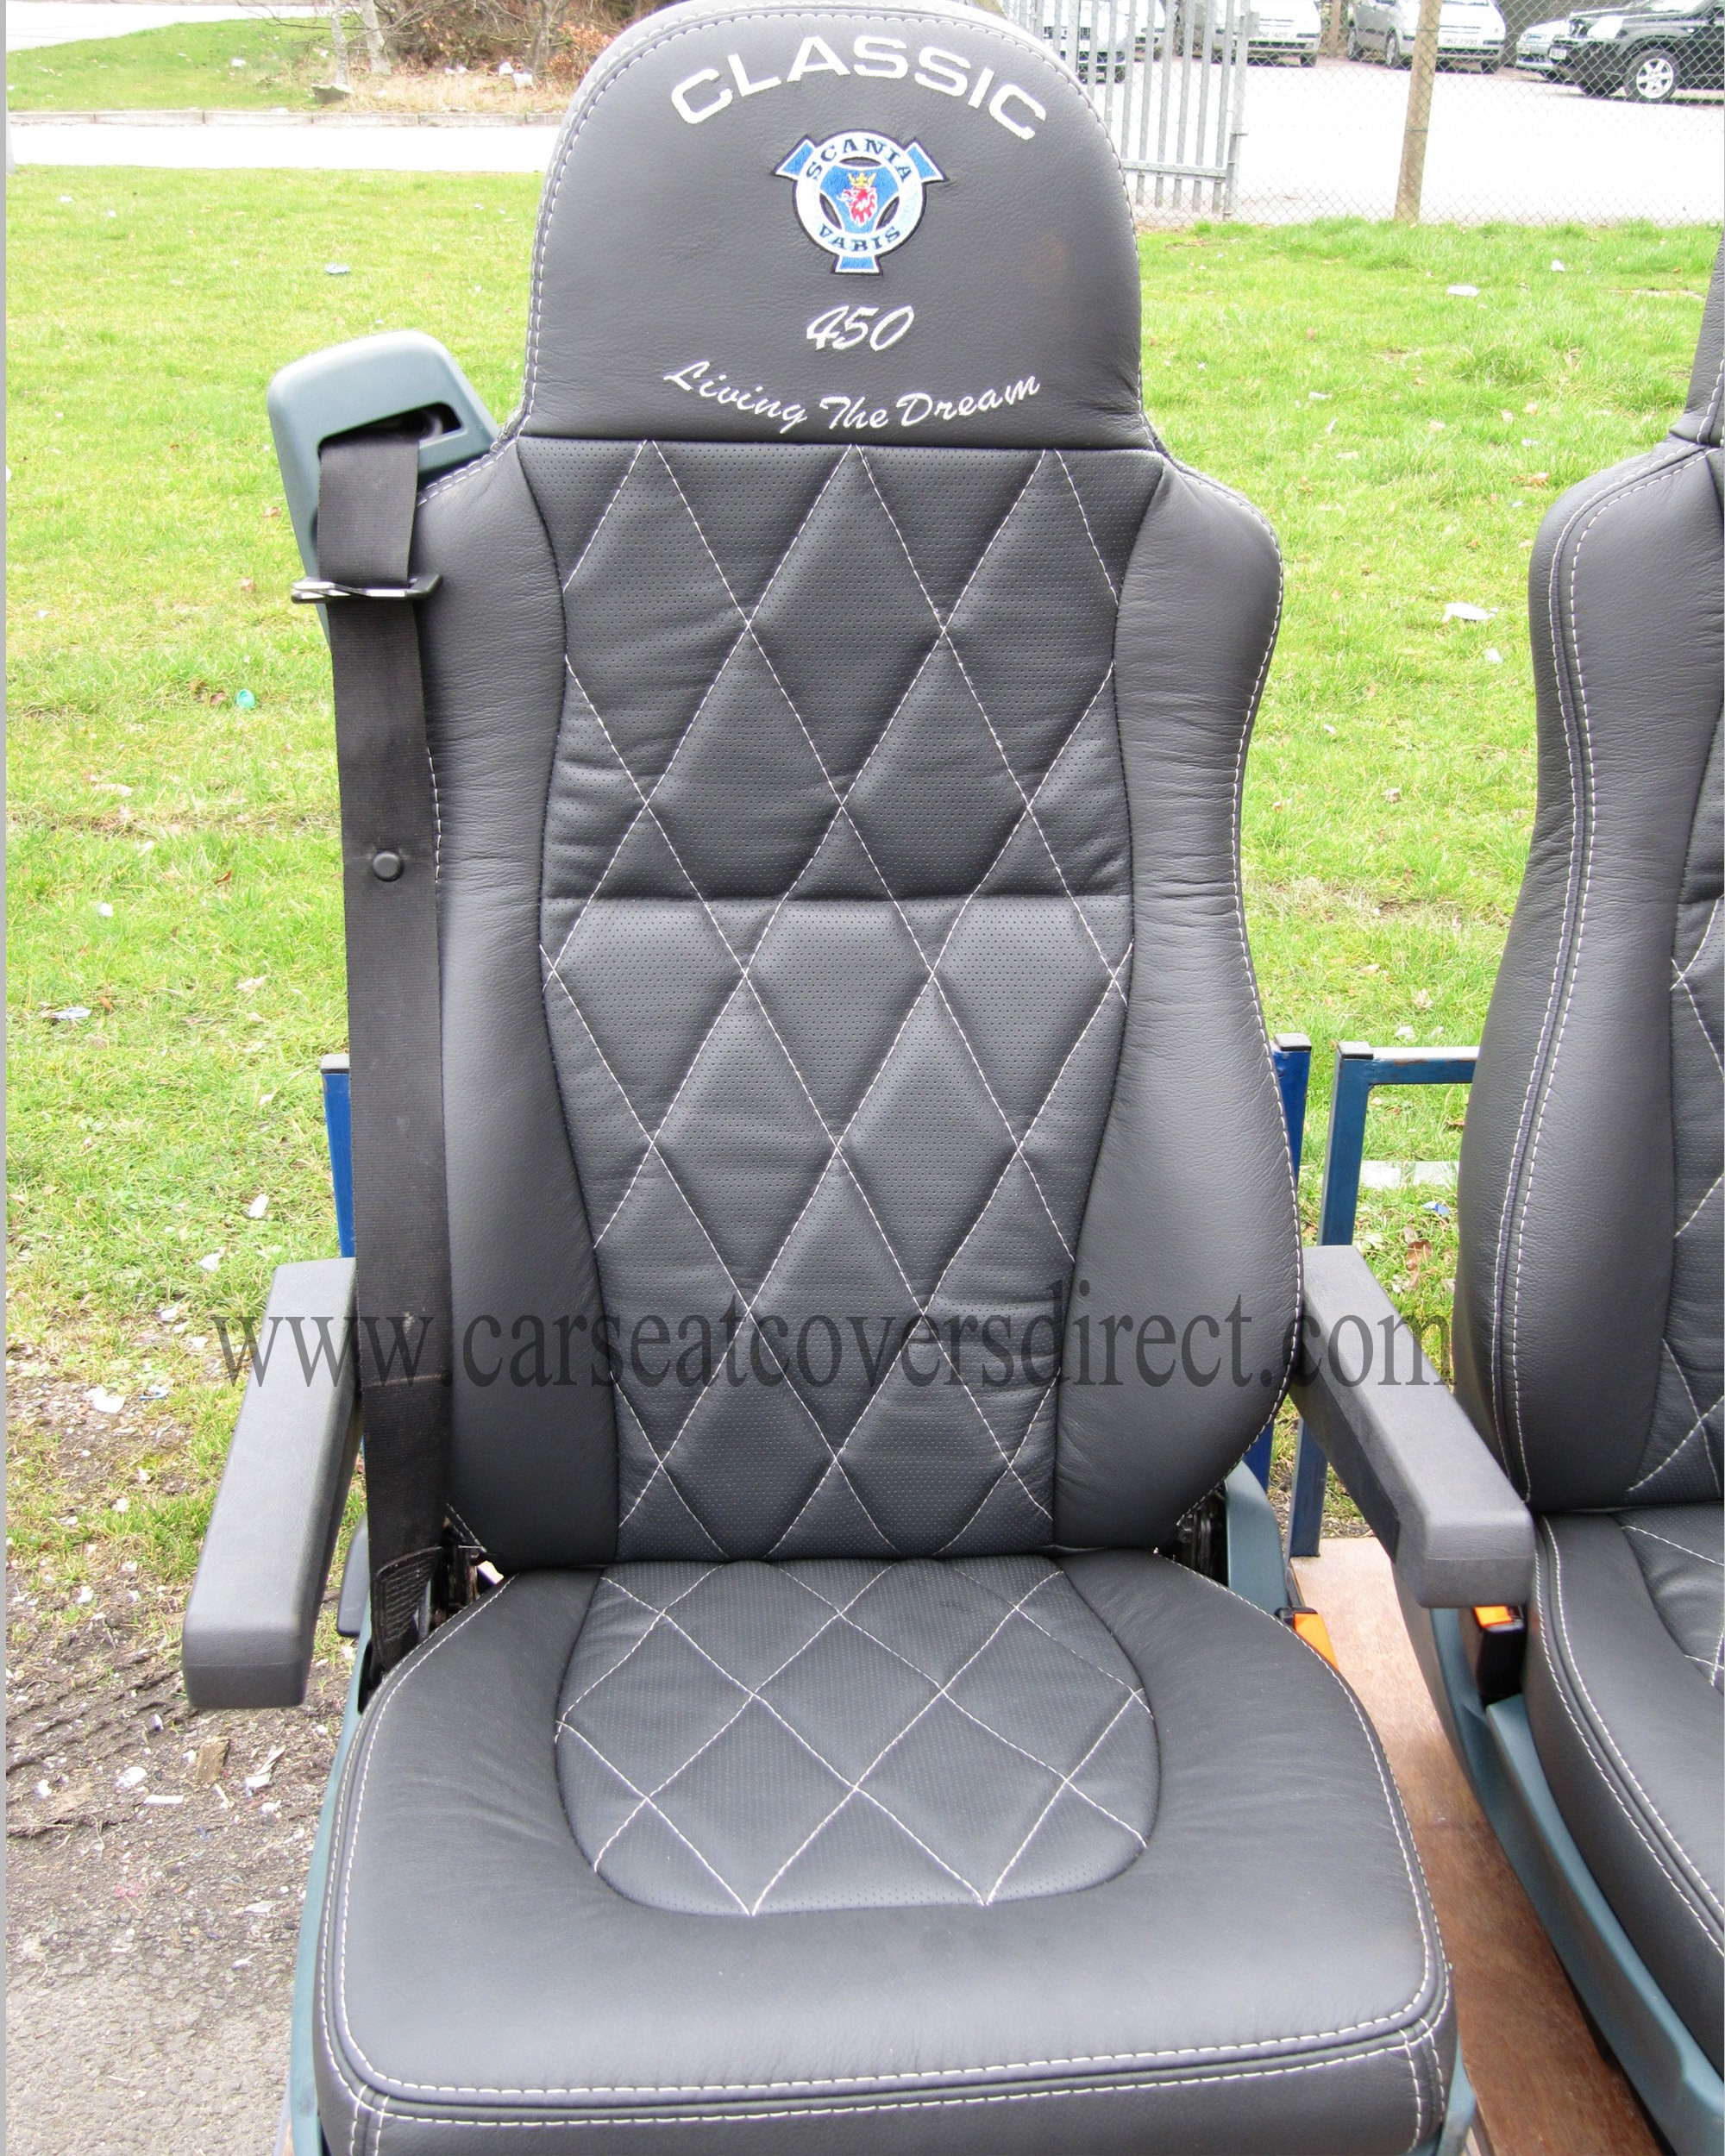 DAF XF-SUPER SPACE CAB LEATHER Kits For RETRIMS. Diamond Stitched.